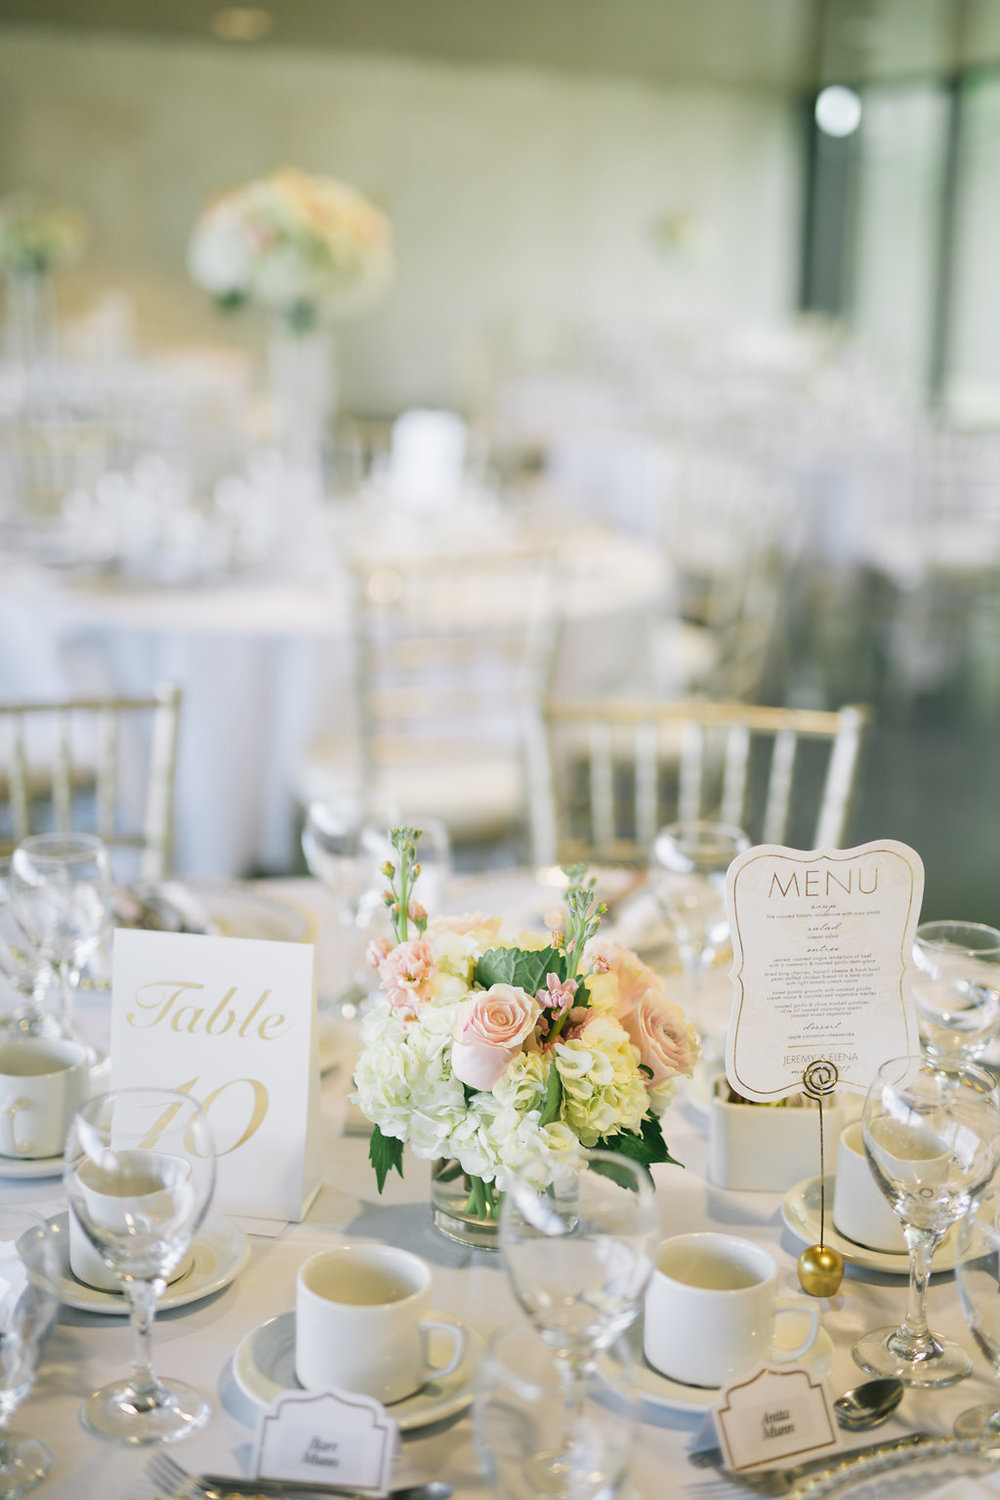 Short Floral Centrepiece - Blush Wedding ideas